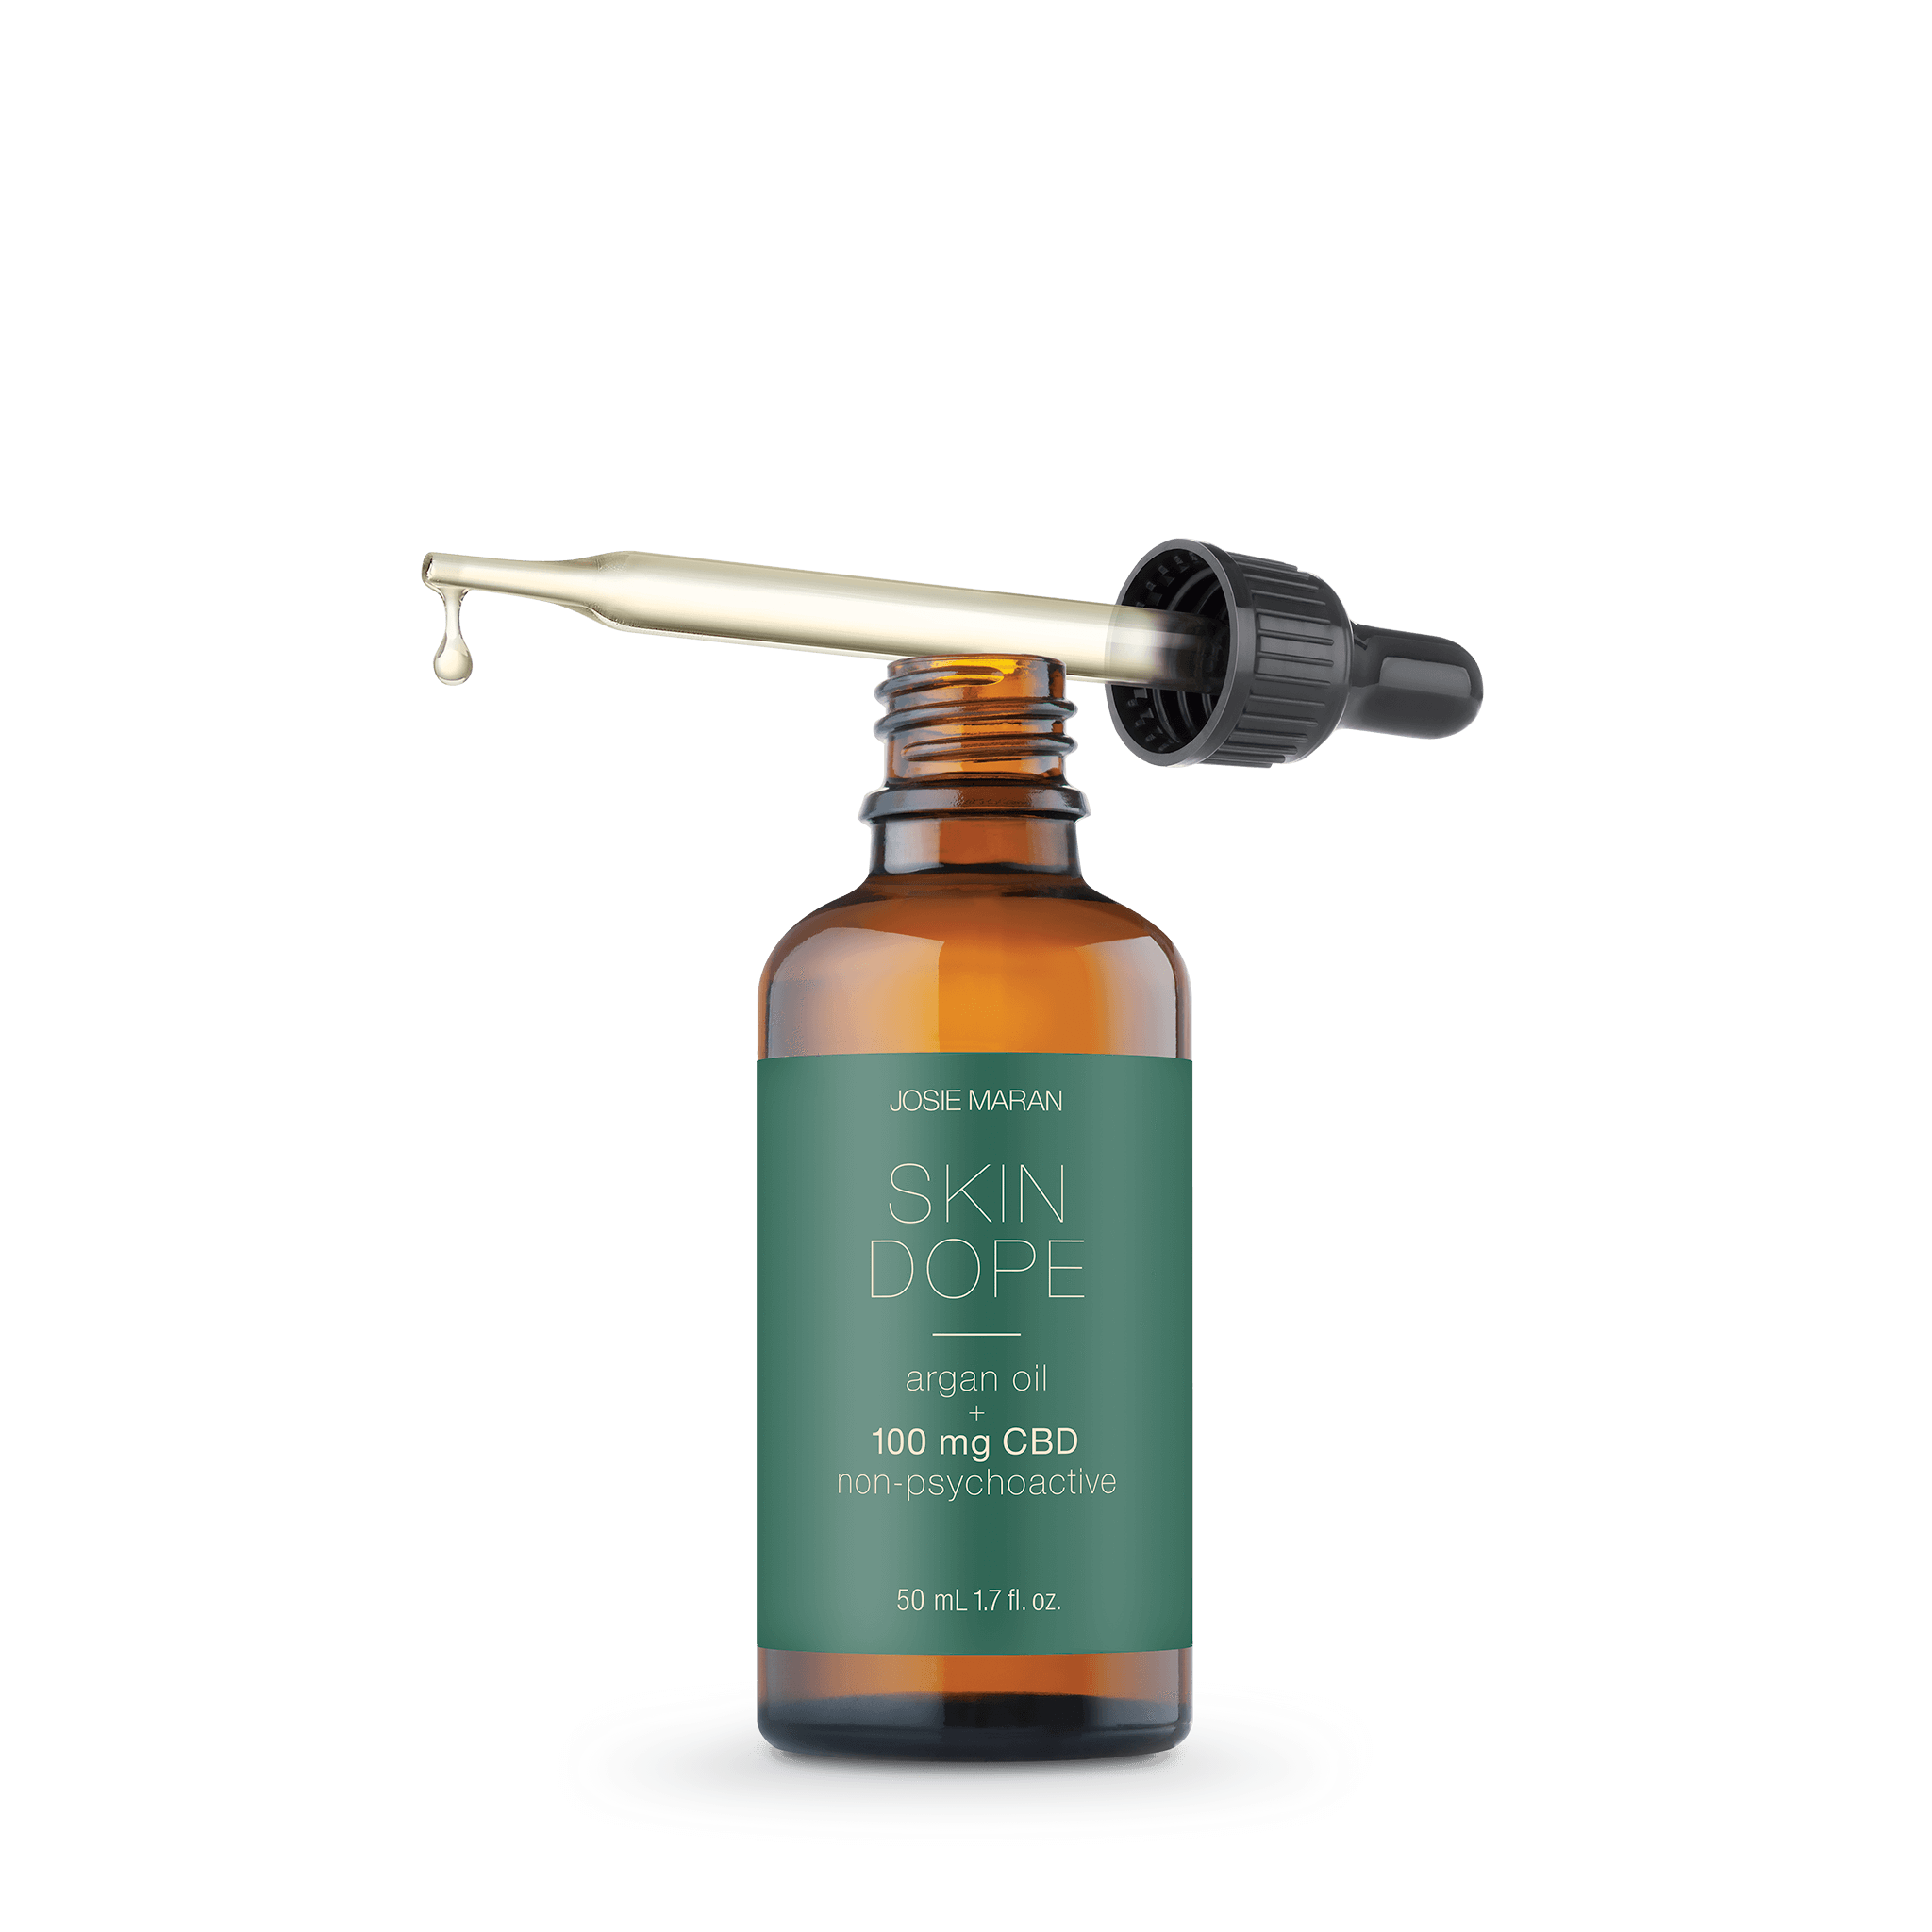 What To Know About CBD Before Putting It On Your Skin, According To